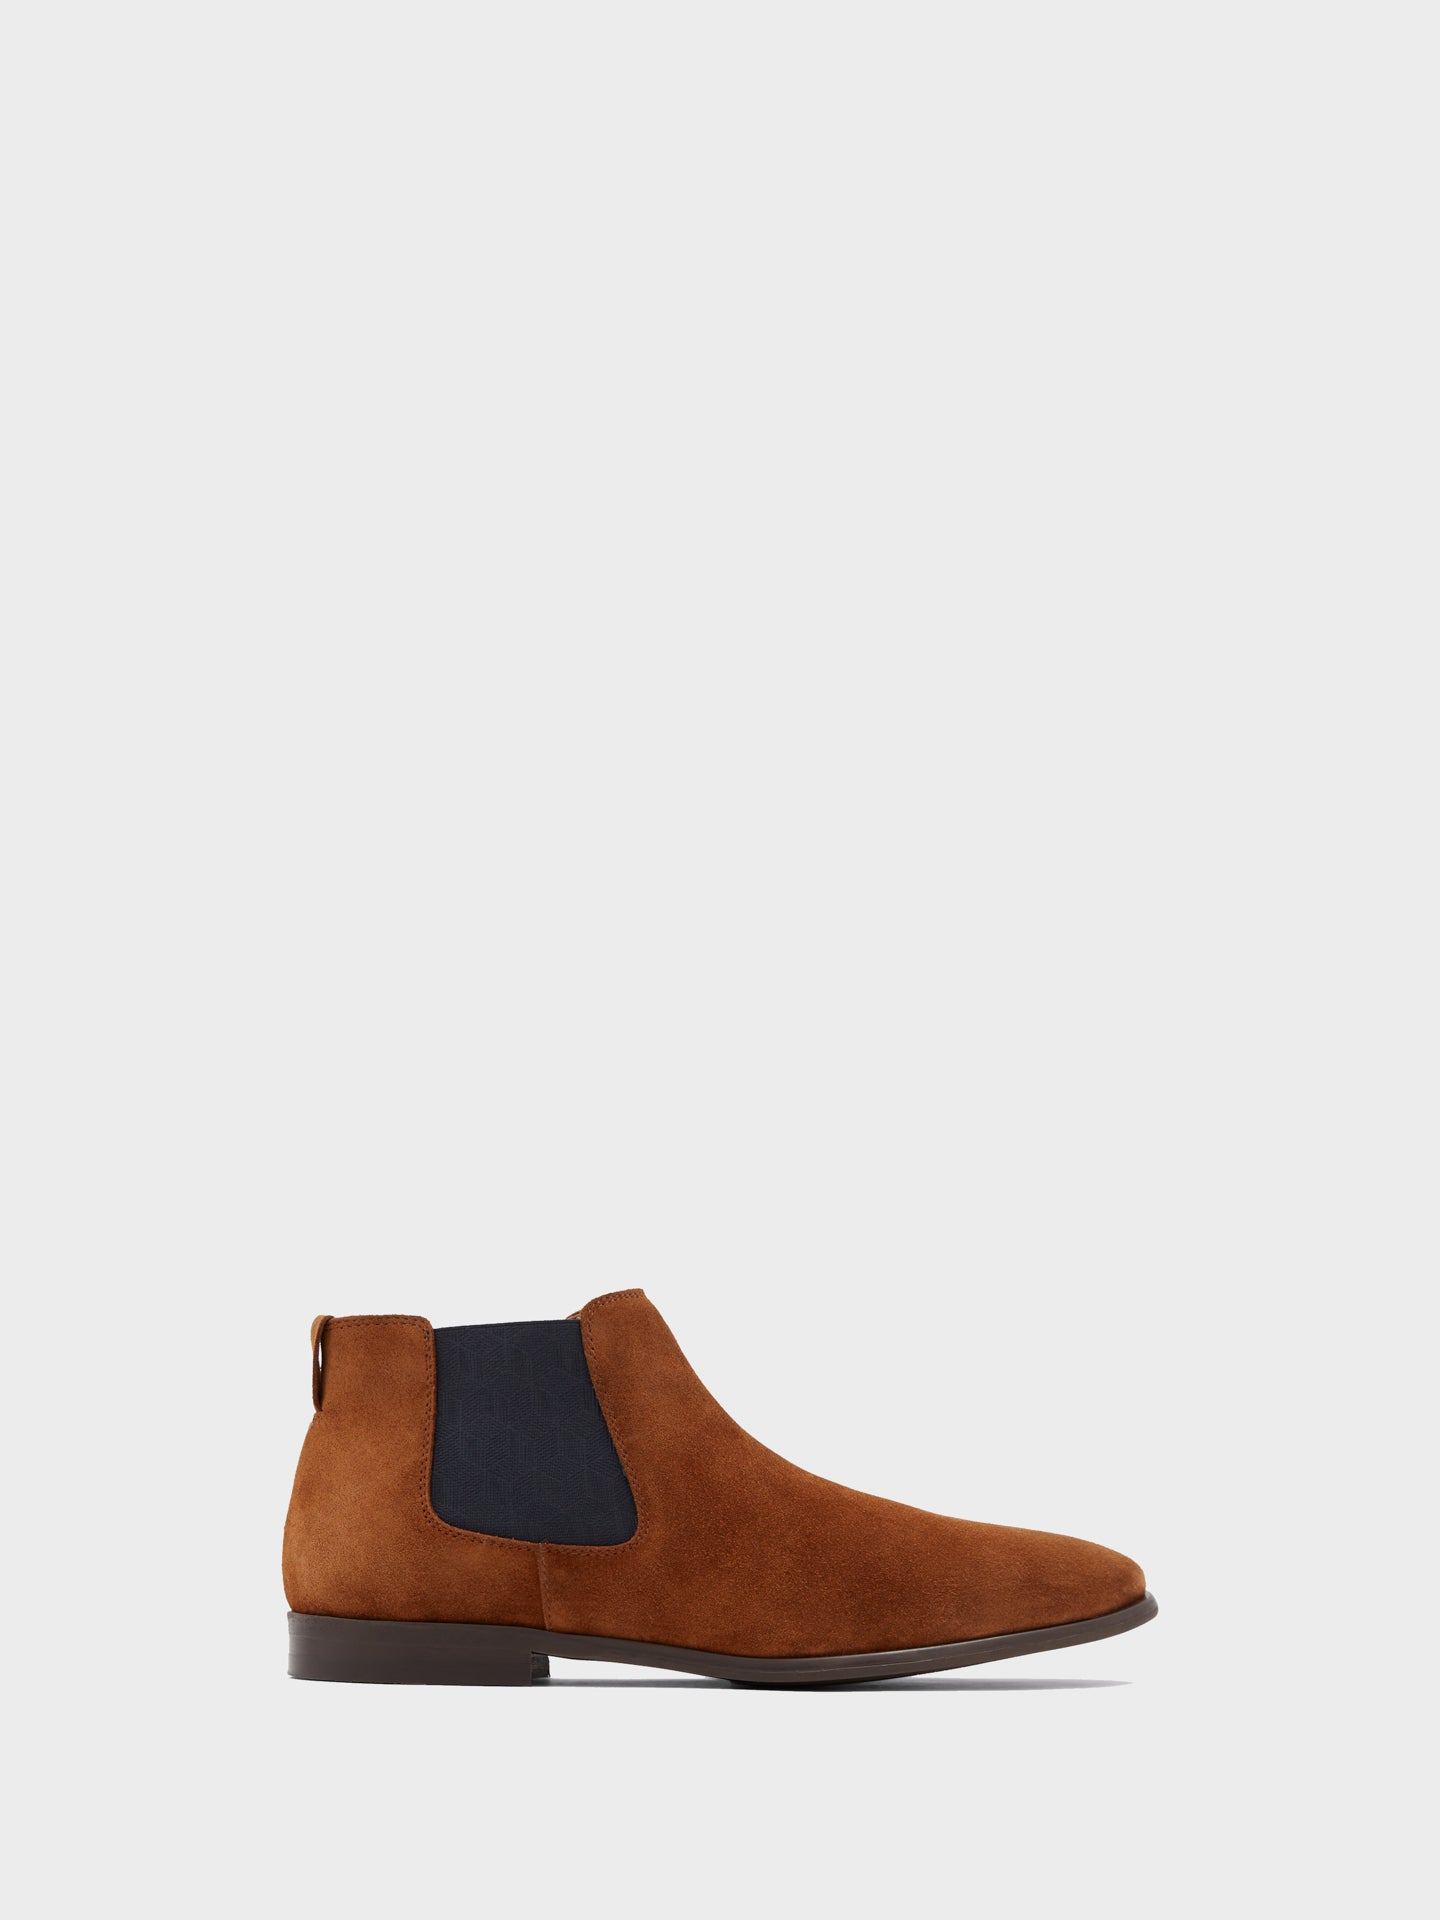 Aldo Brown Round Toe Ankle Boots